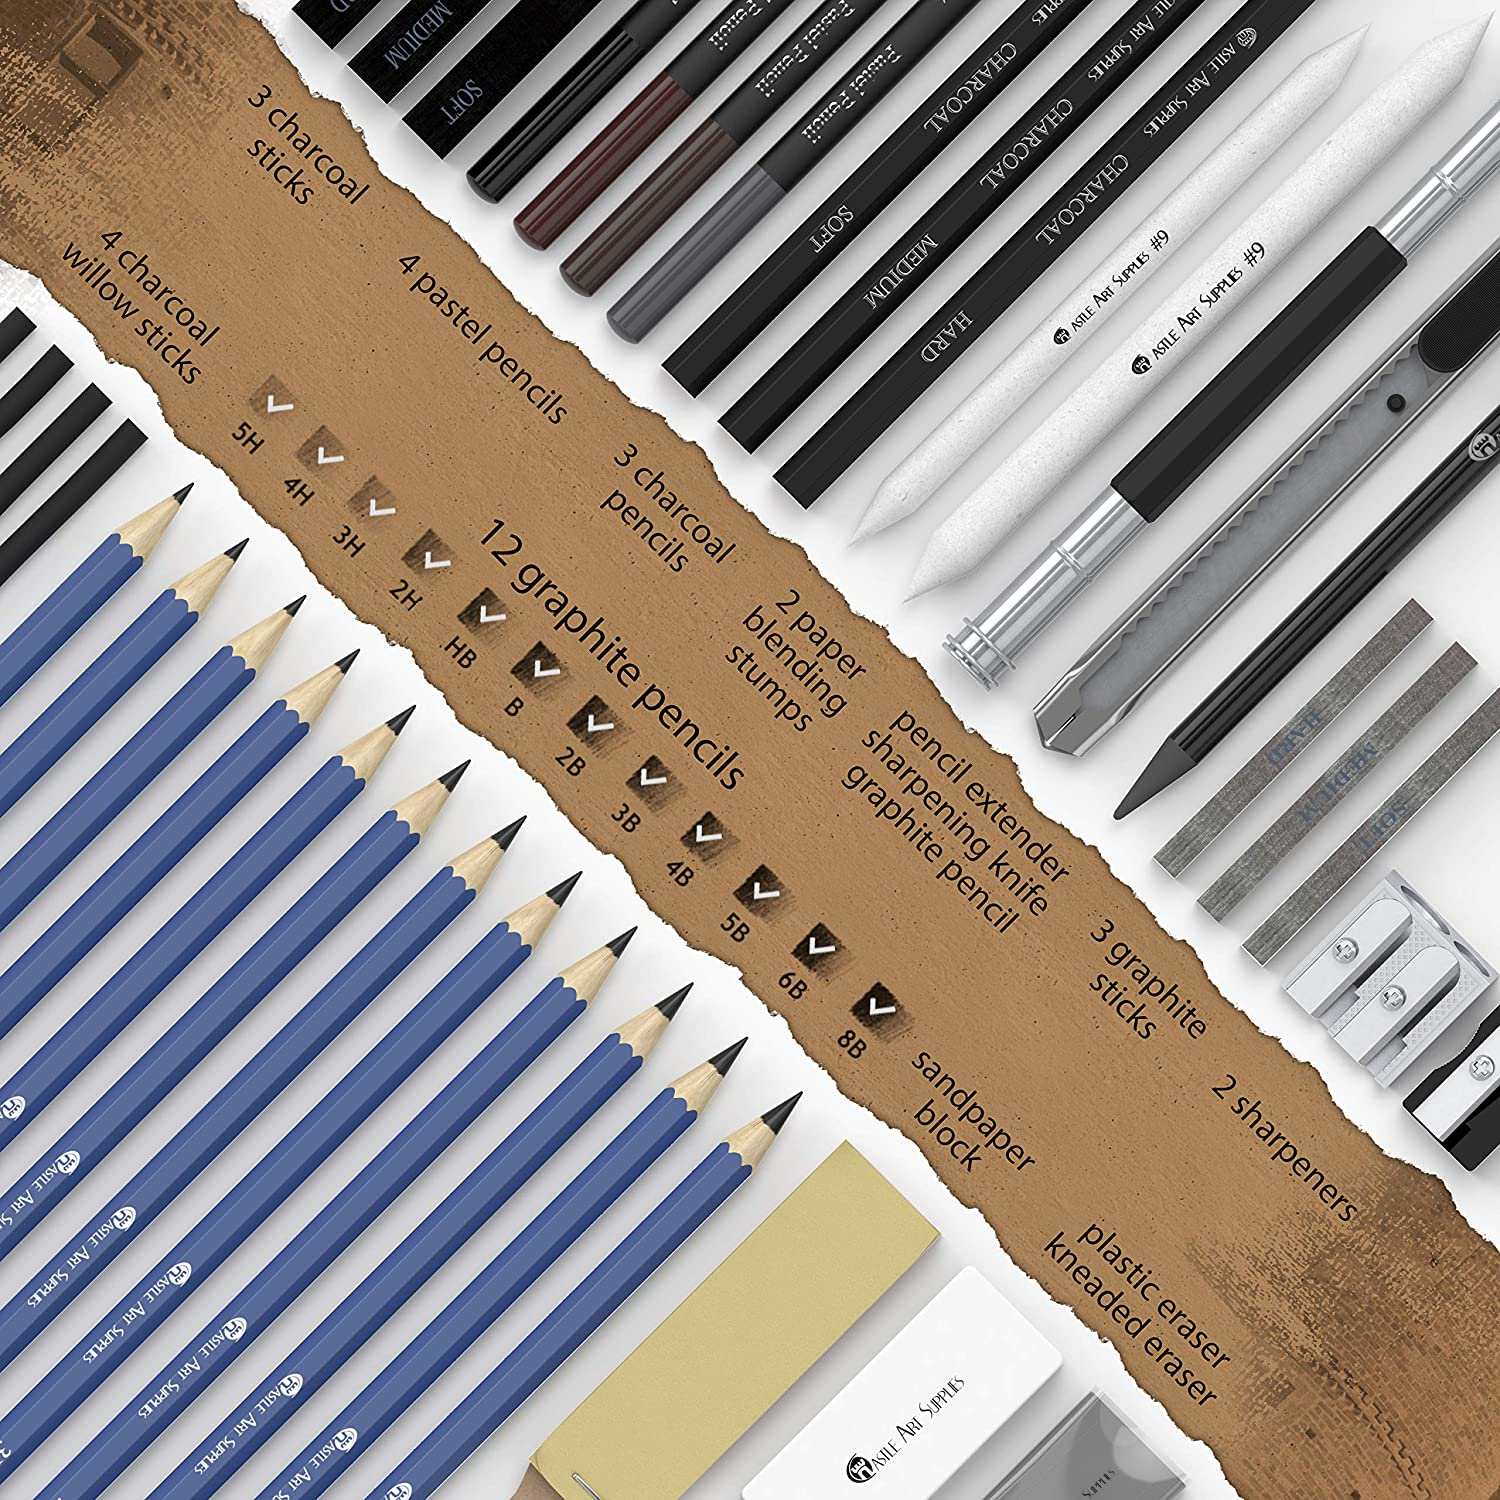 Castle art supplies 40 piece sketching pencils and drawing set neatly presented in sturdy zipper case with pop up feature quality range of sketch pencils